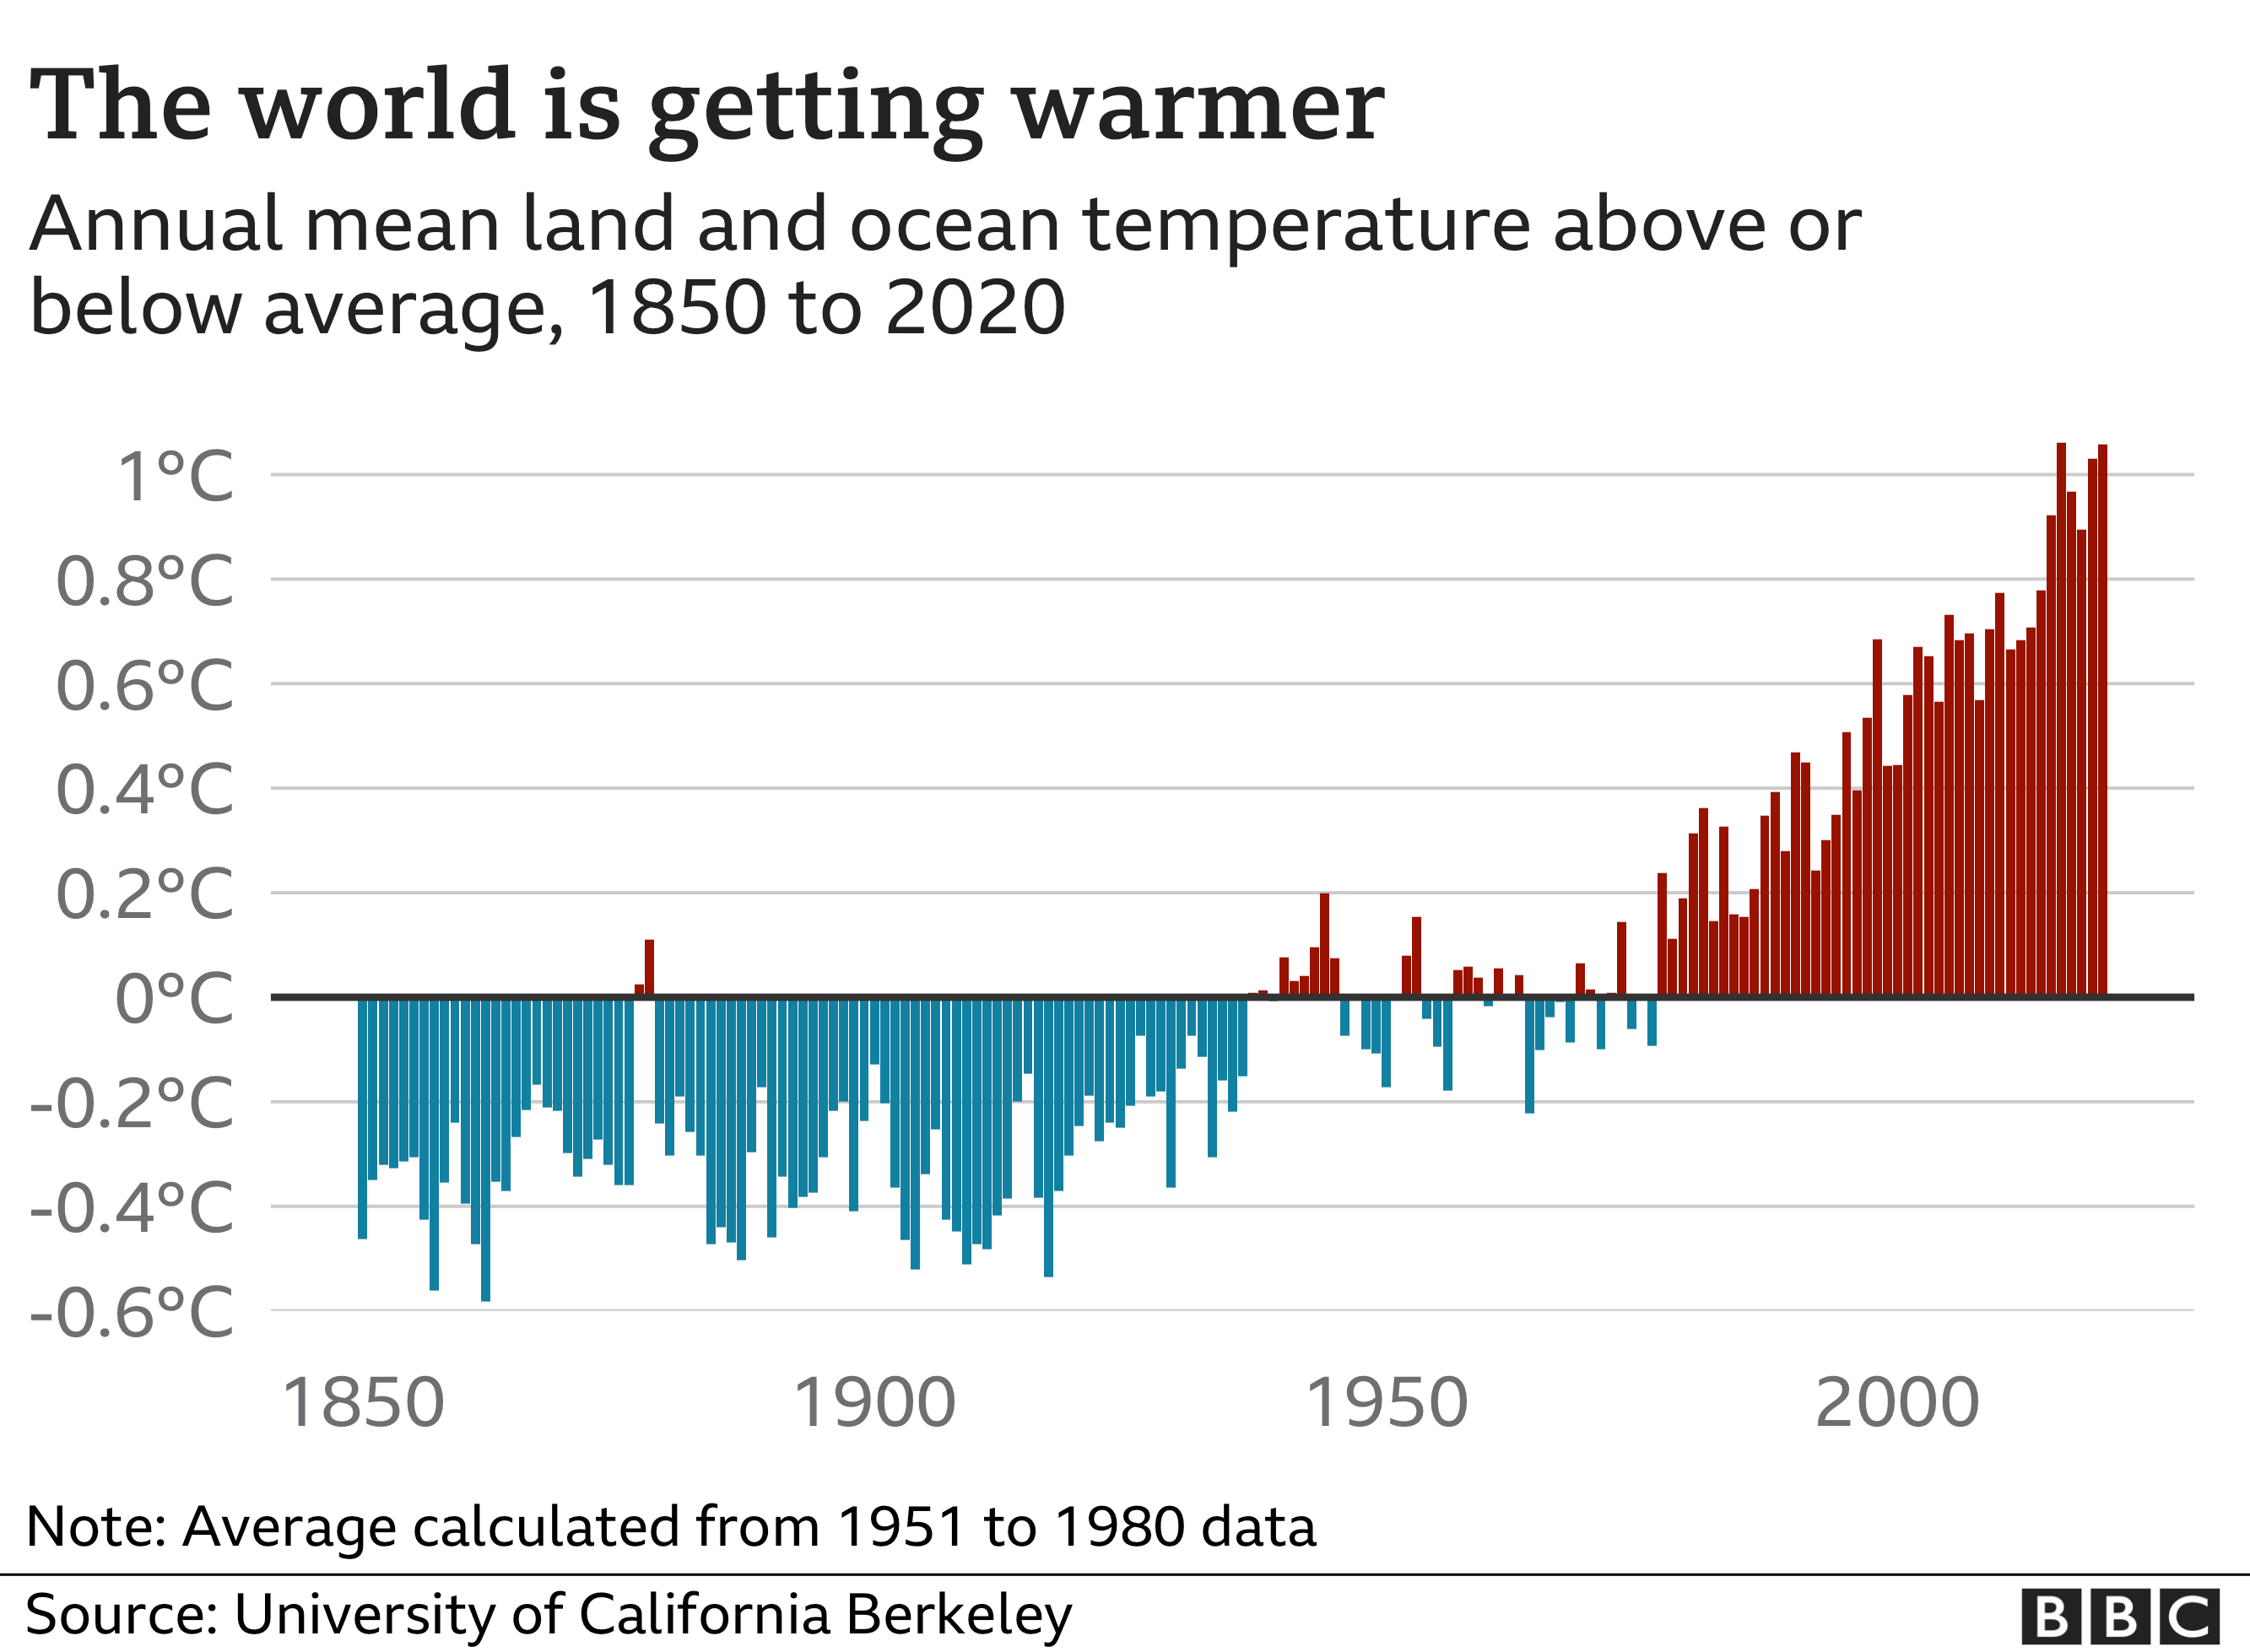 Bar chart showing how the world has been getting warmer between 1850 to 2020